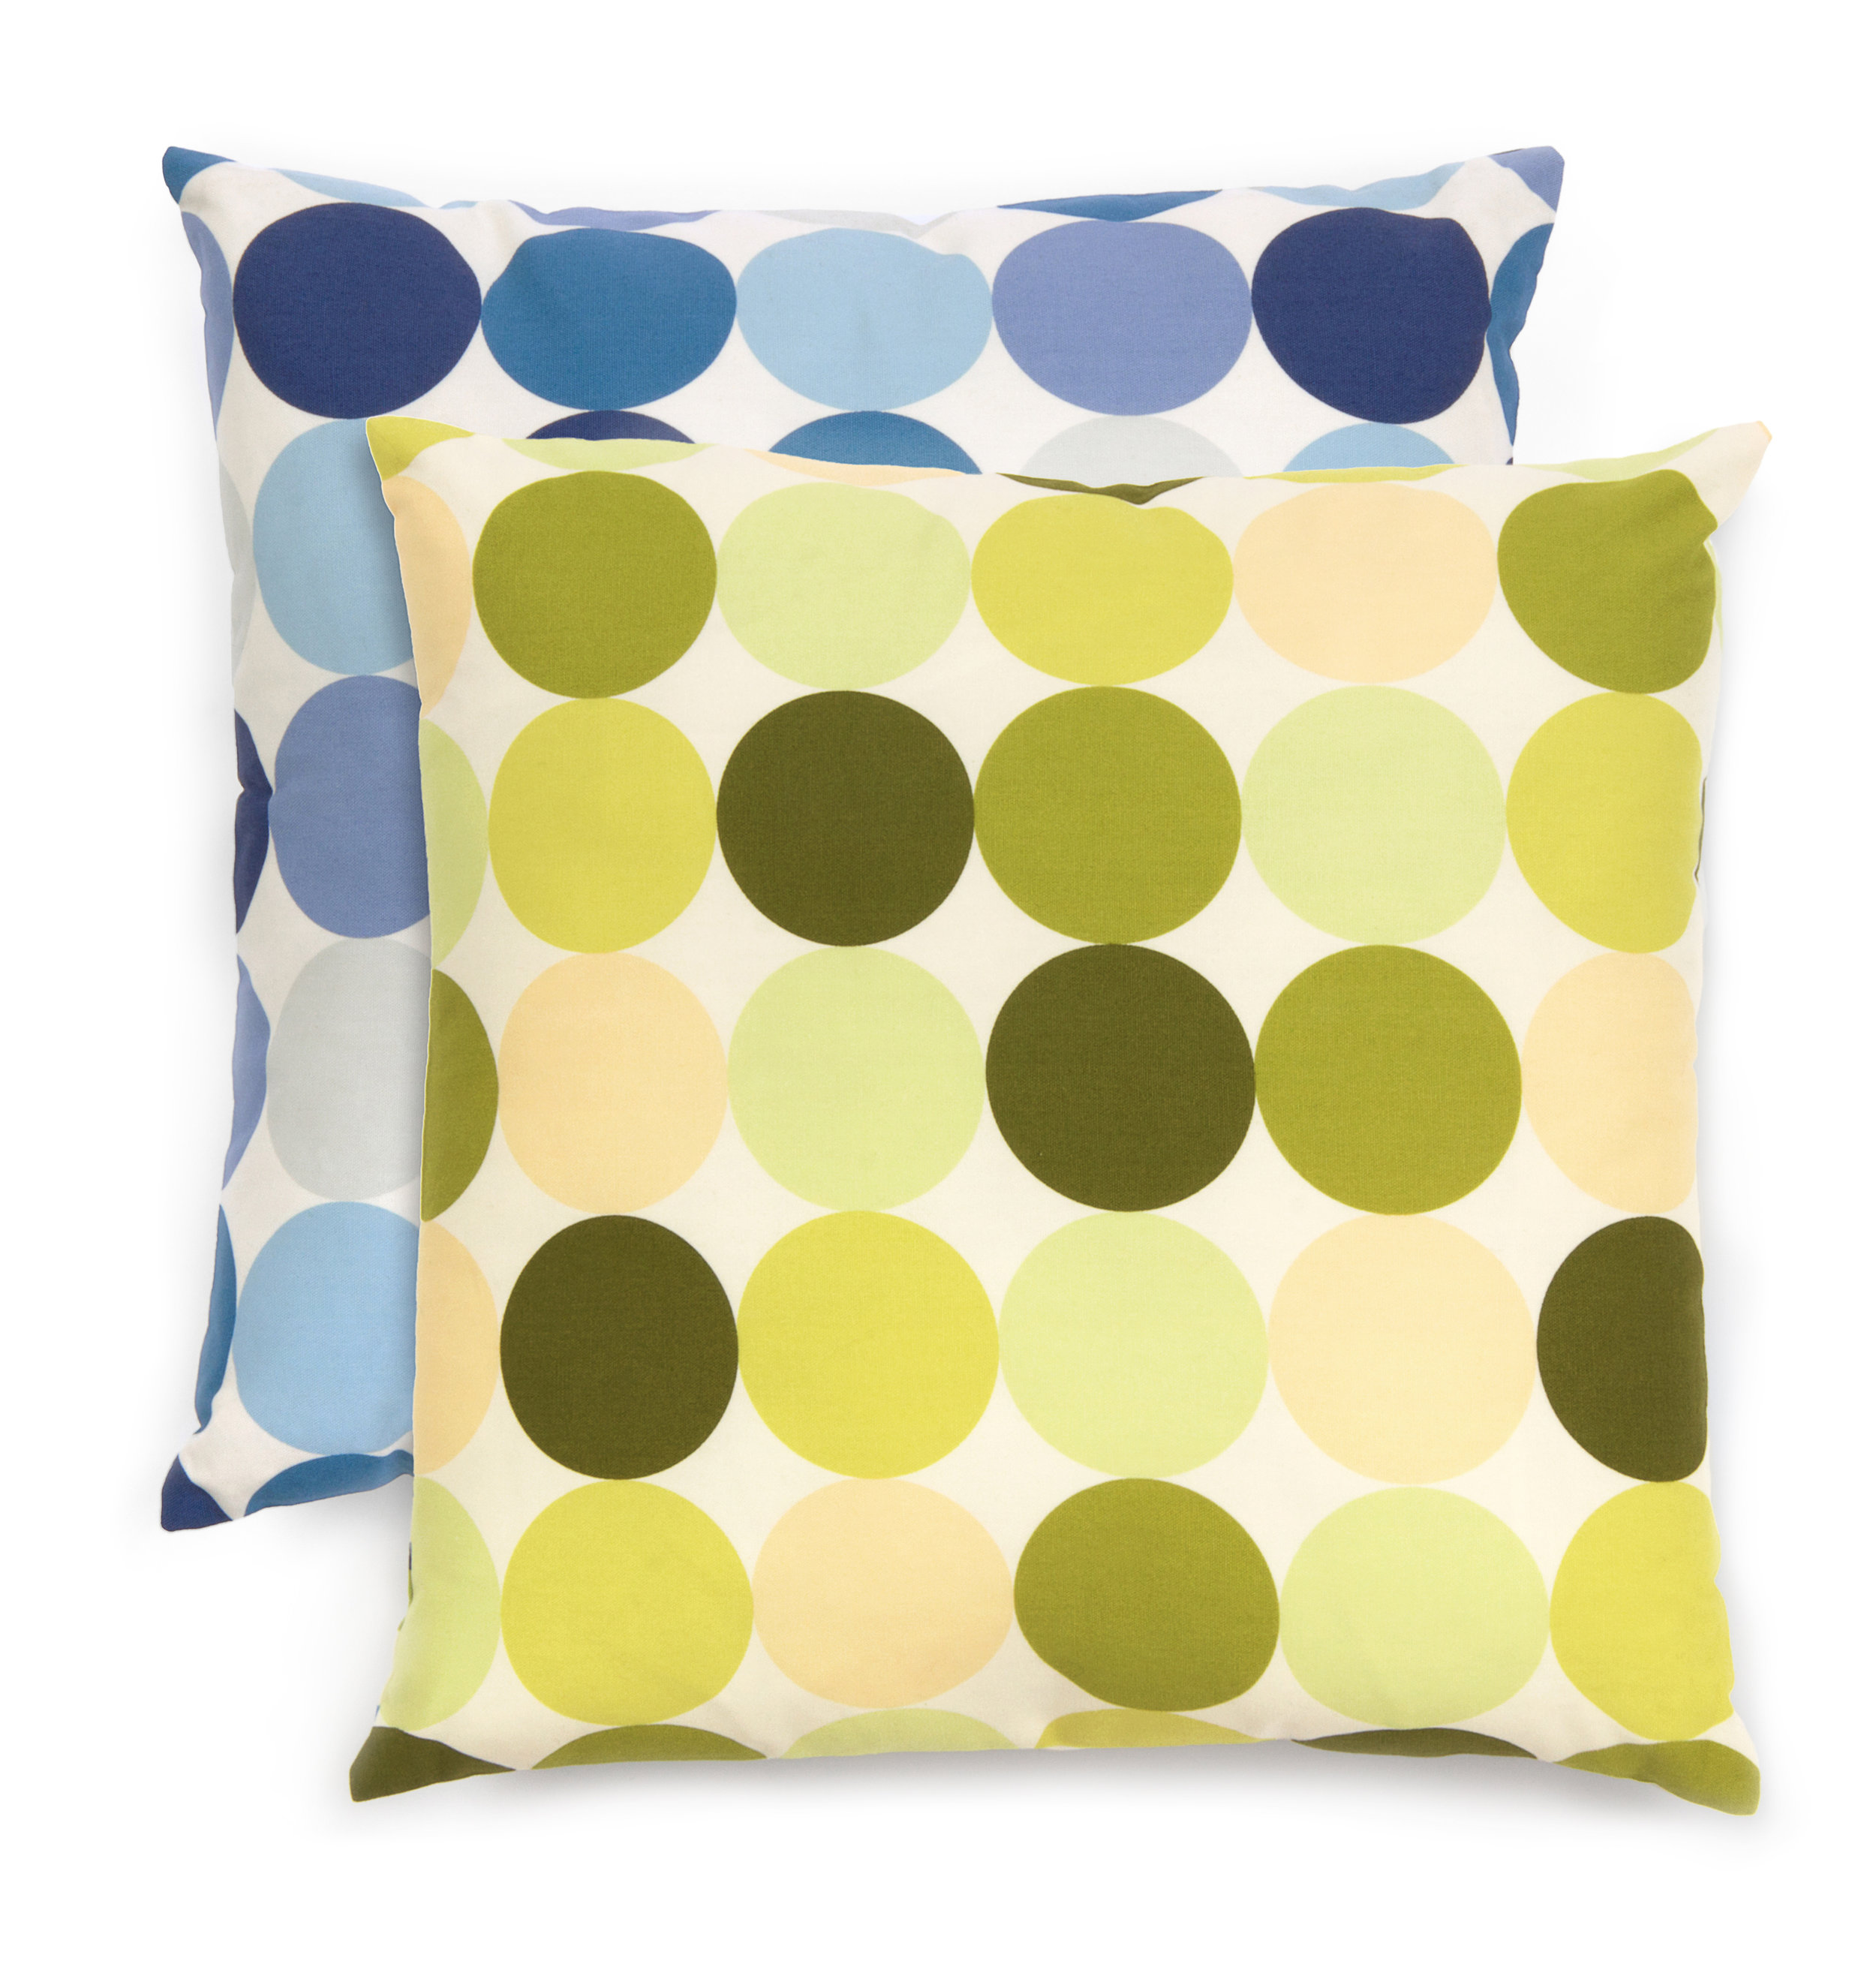 Canvas Prints Pillows   designed by  Robert Kaufman Fabrics,  made by Ramona Burke, featuring   Sevenberry: Canvas Prints